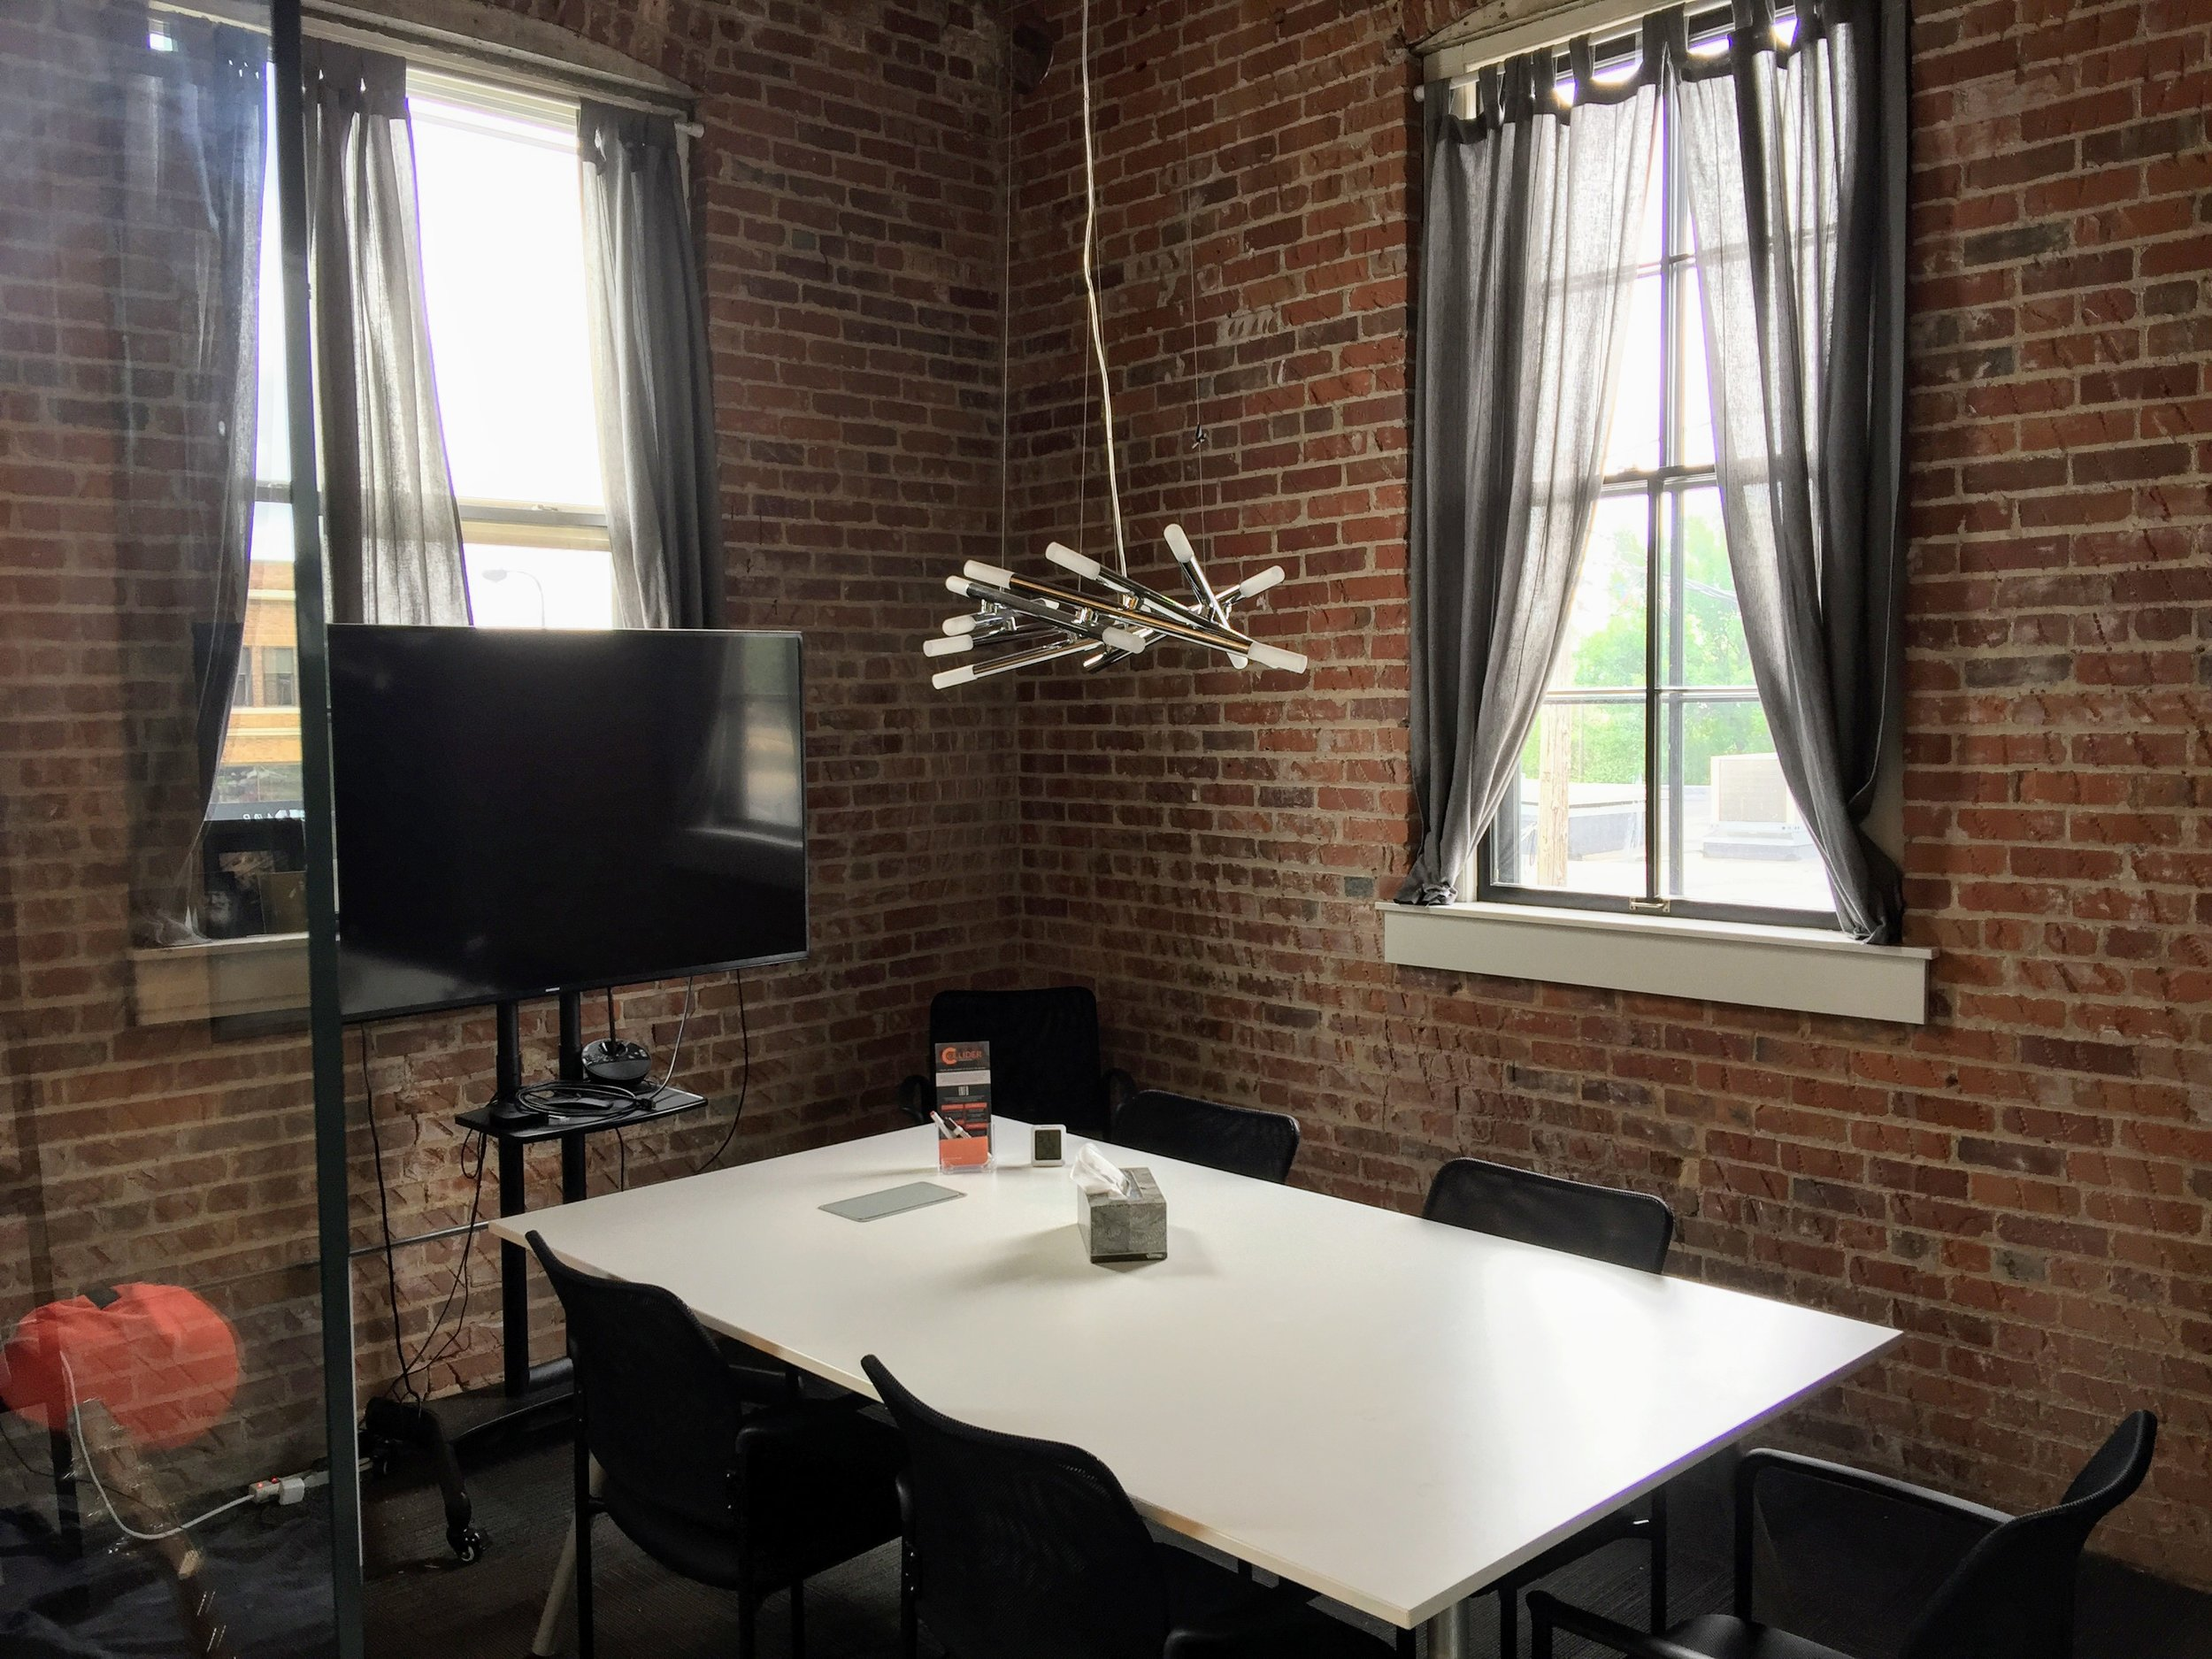 Small Conference Room Rental - $35/hour• Room accommodates up to 6 people• Large HD TV for presentations• Audio and video conferencing equipment available